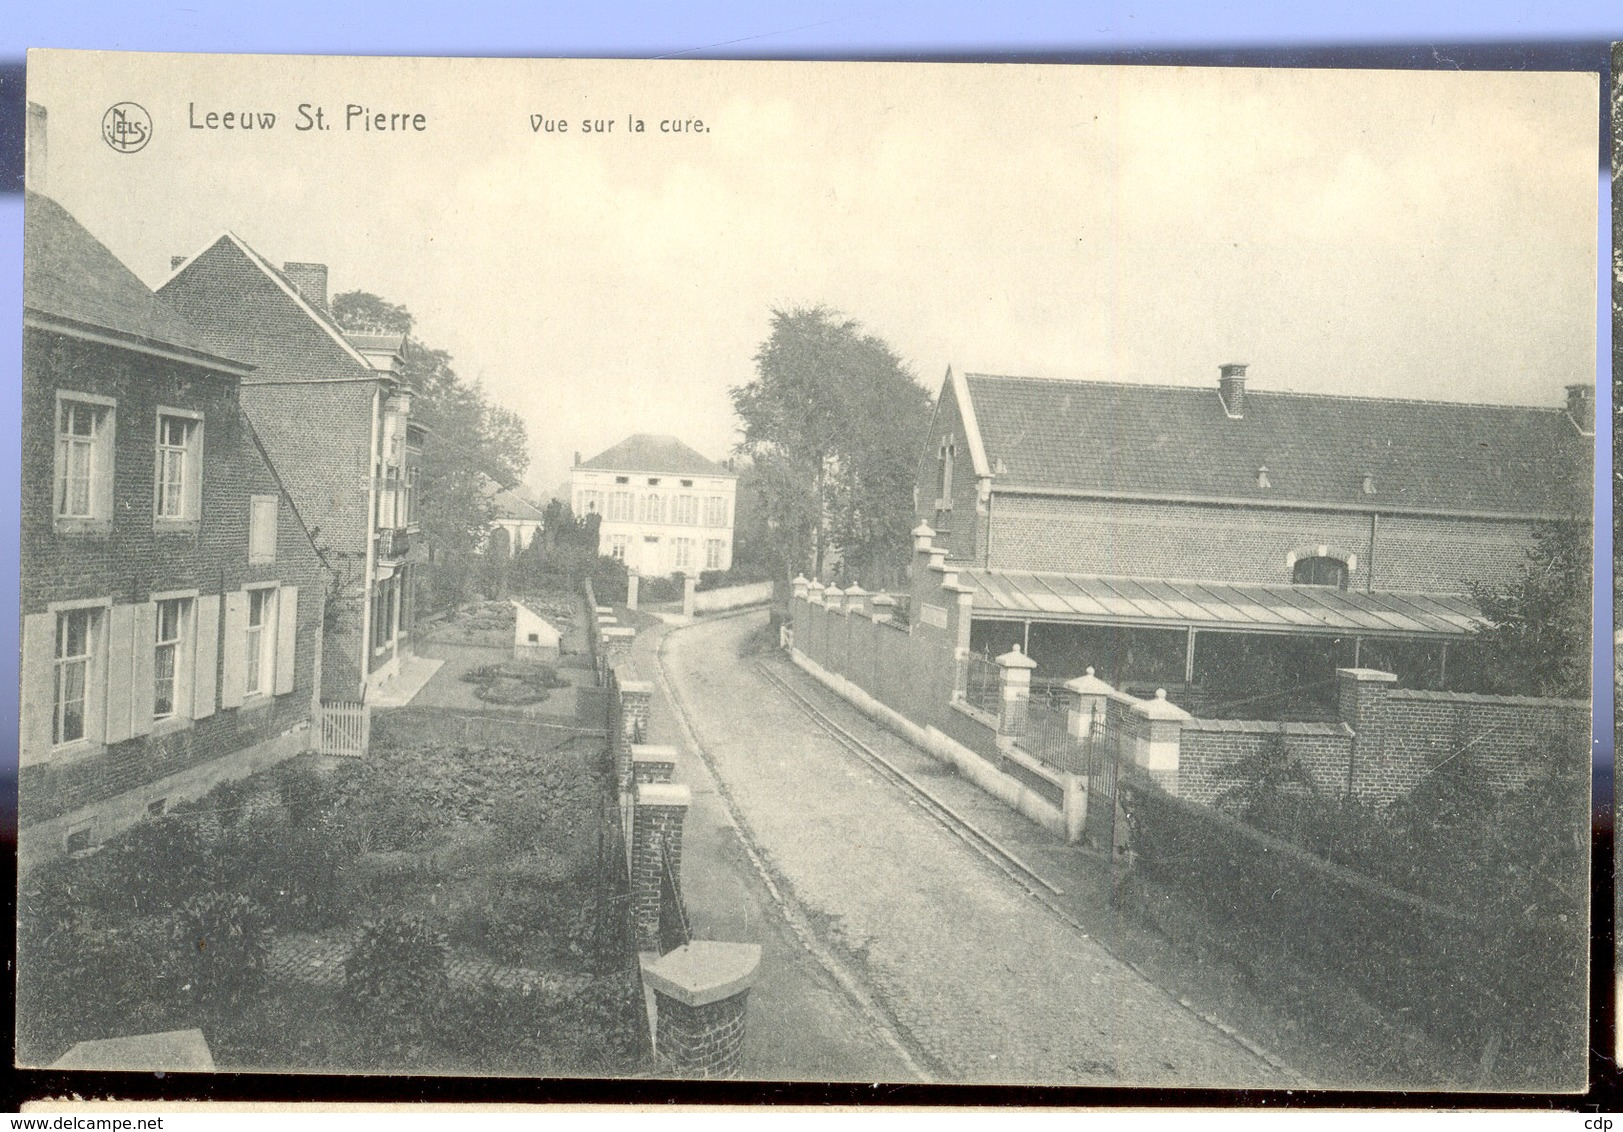 Cpa Leeuw St Pierre   Cure - Andere